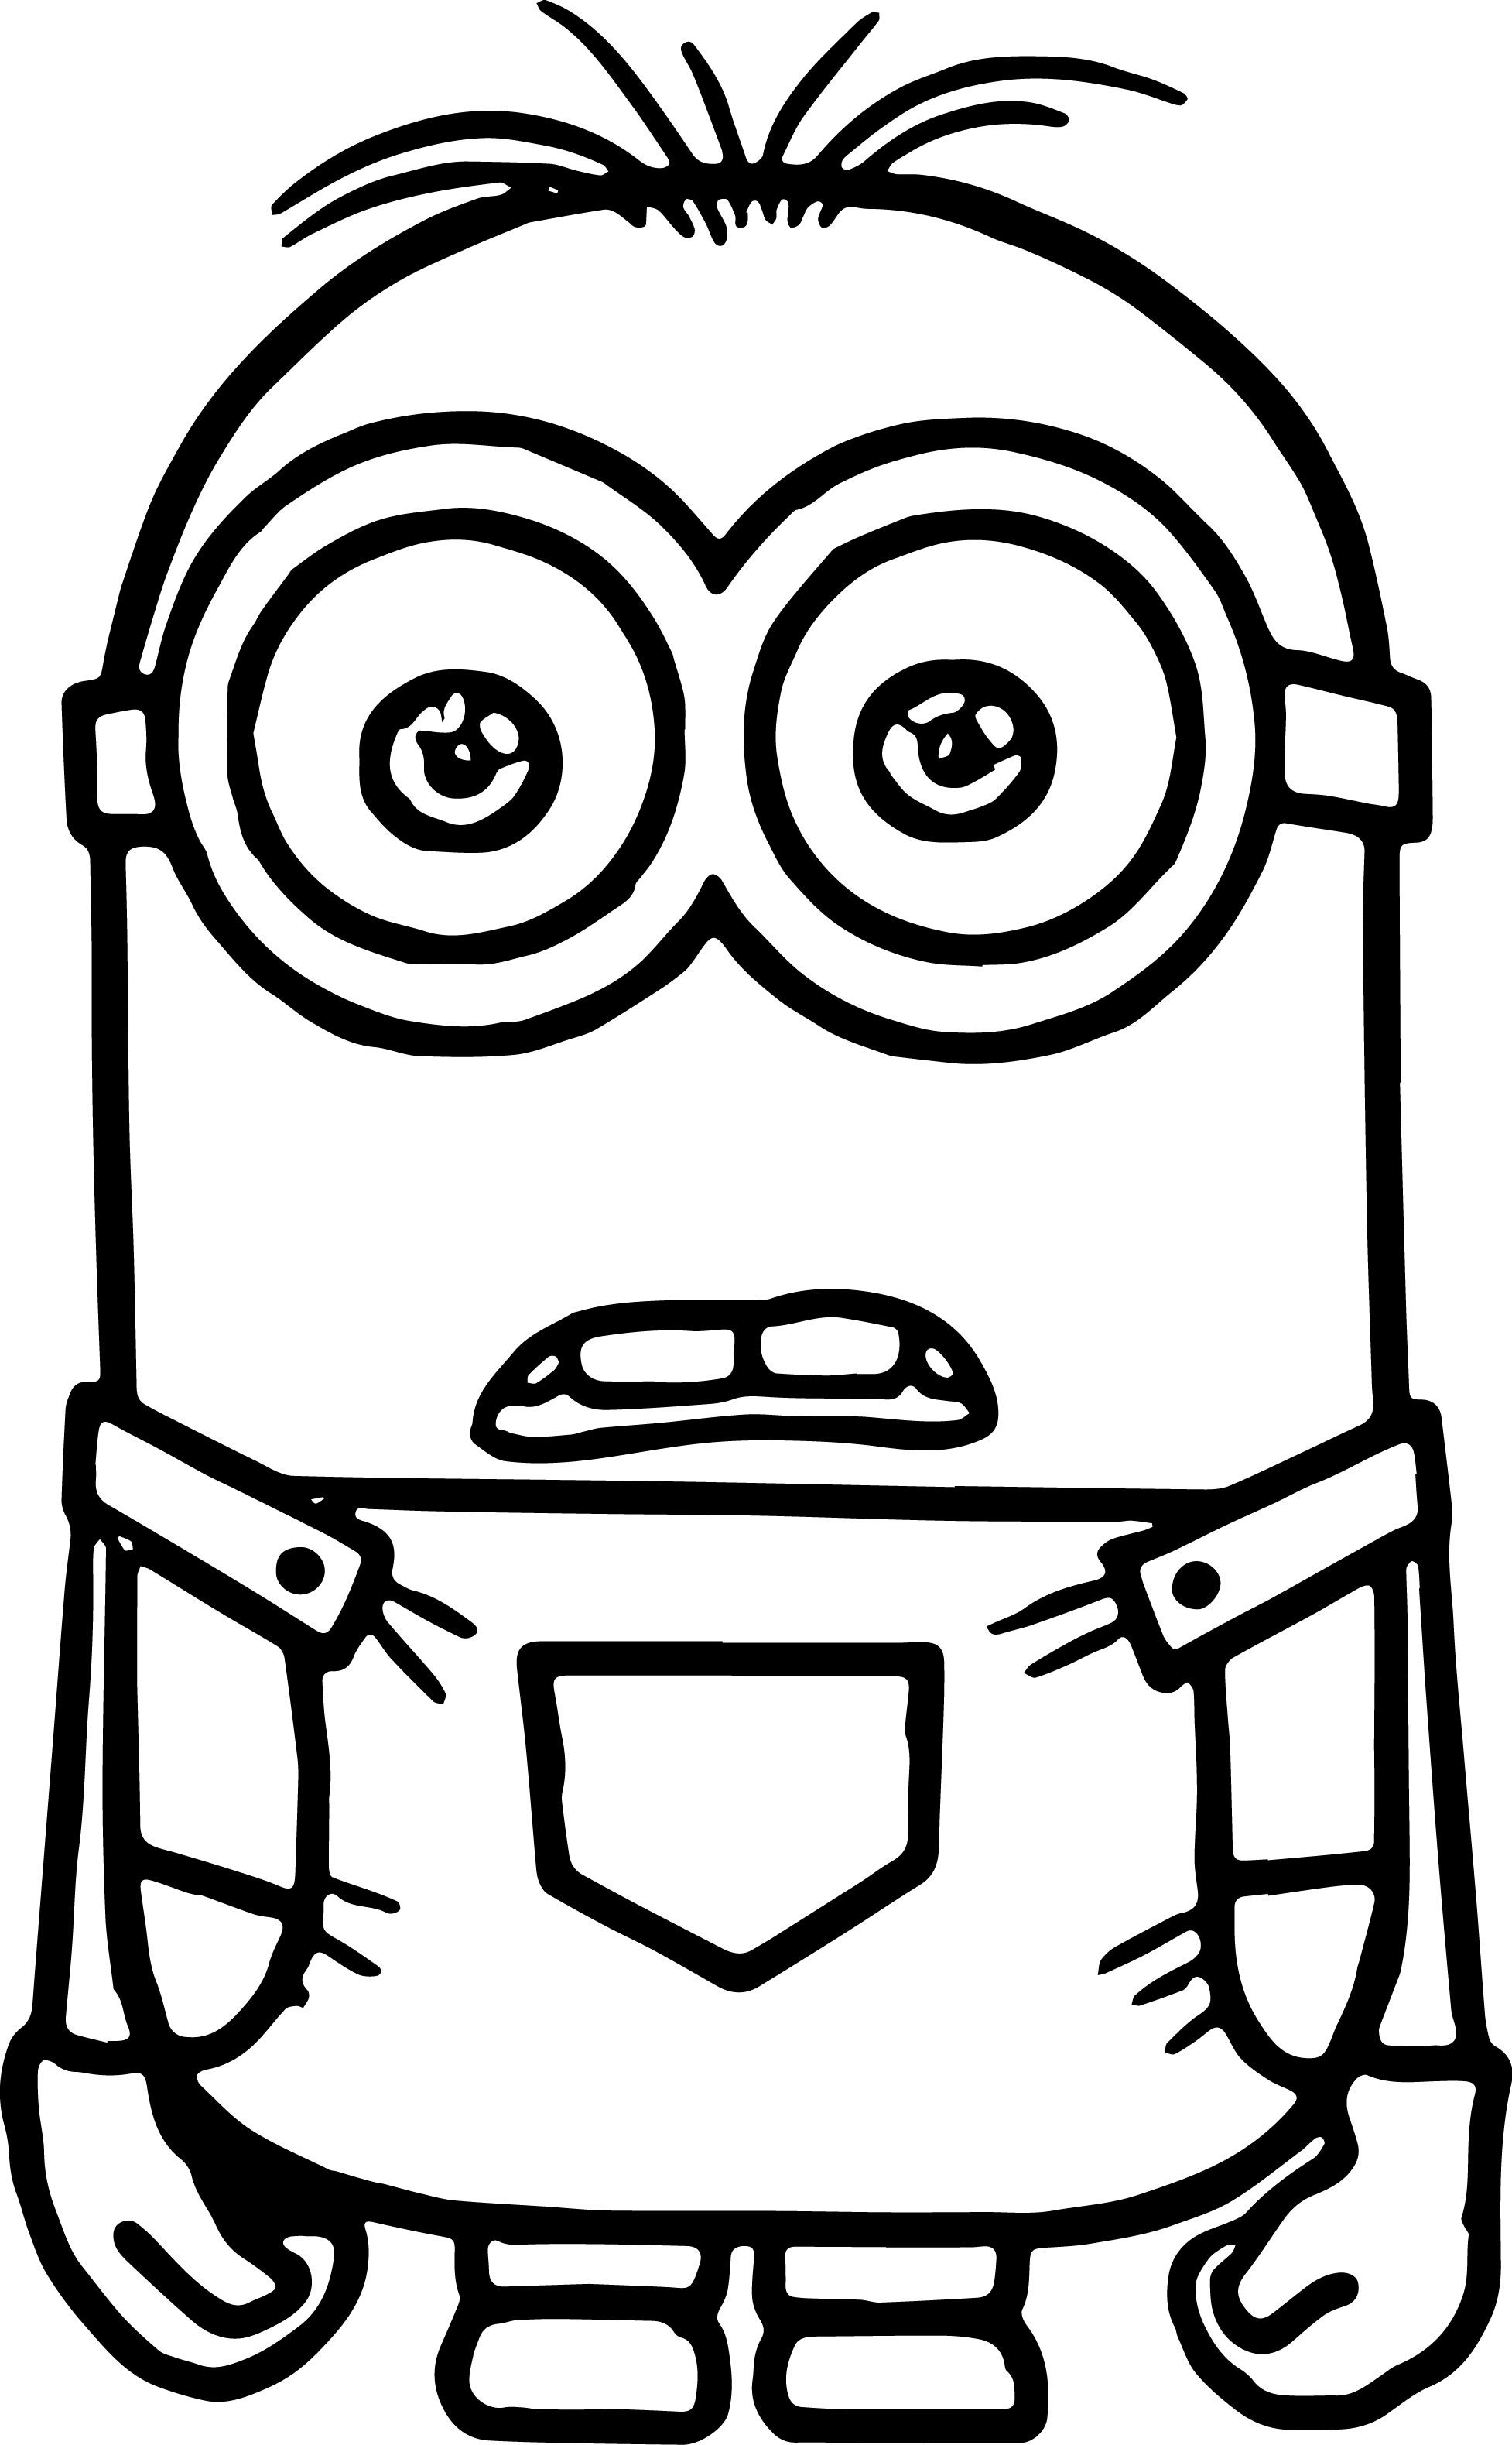 Minion maid coloring pages - Free Coloring Pages Of Minions Halloween Wallpaper